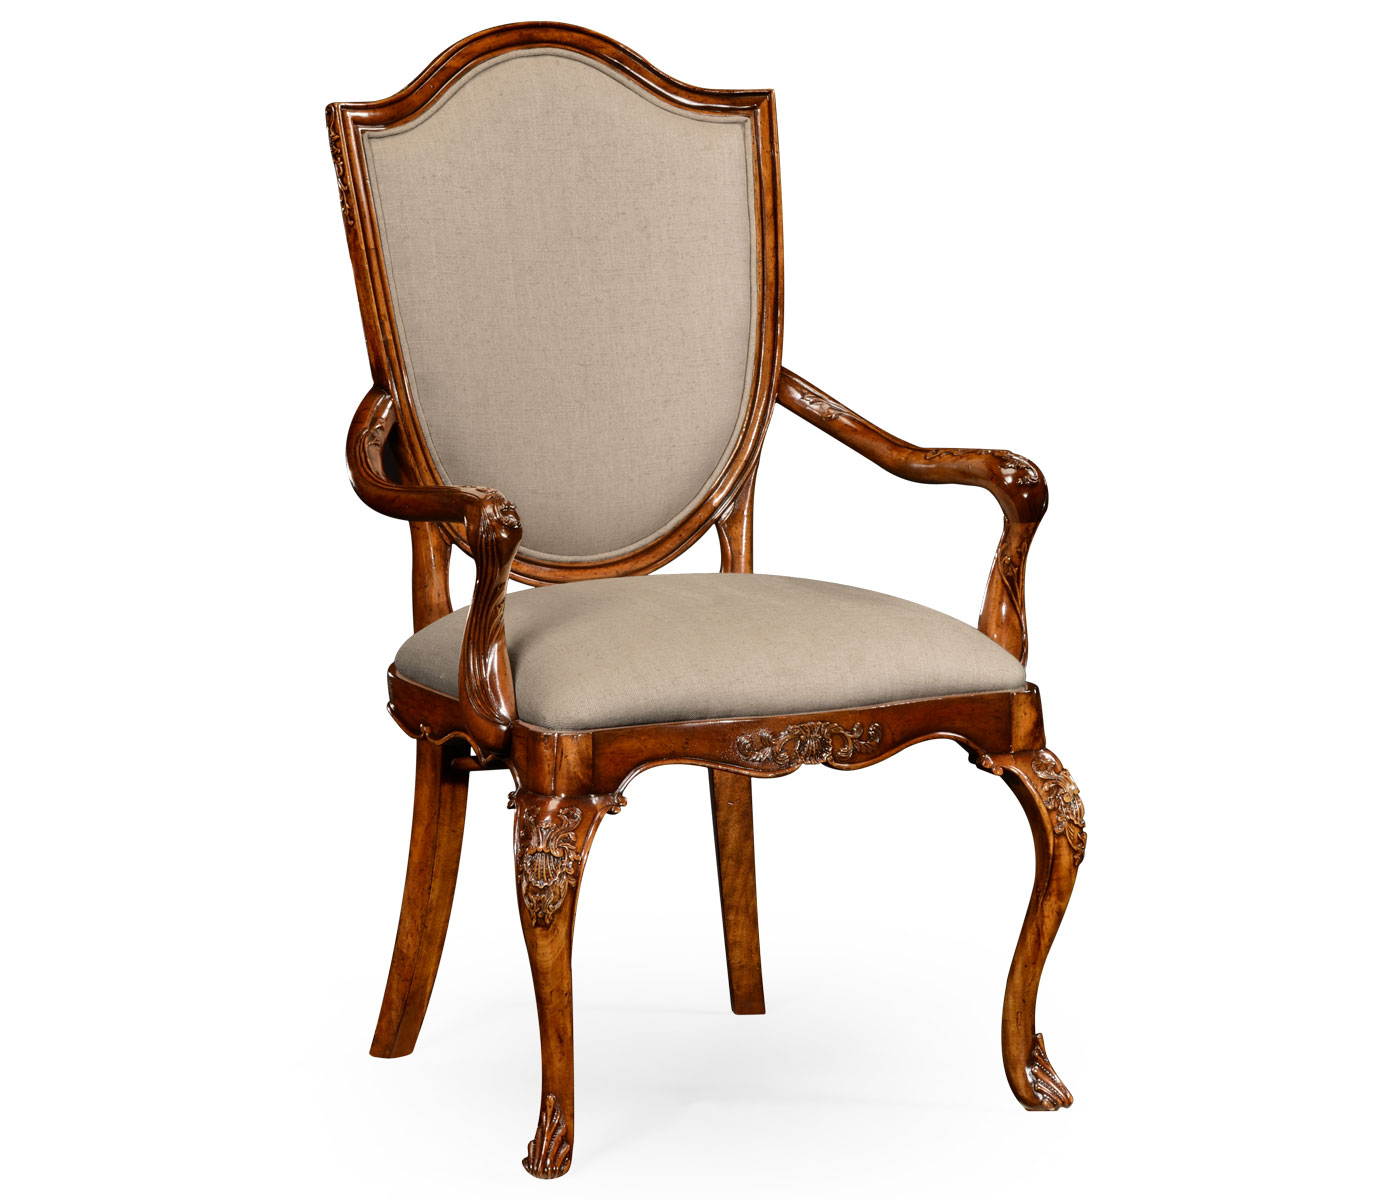 How To Upholster An Arm Chair Upholstered High Arm Chair Upholstered Arm Chair Bernhardt Upholstered Shield Back Chair Arm Bernhardt Dining Room Upholstered Arm Chair 317 542 Re Upholstering 101 How I